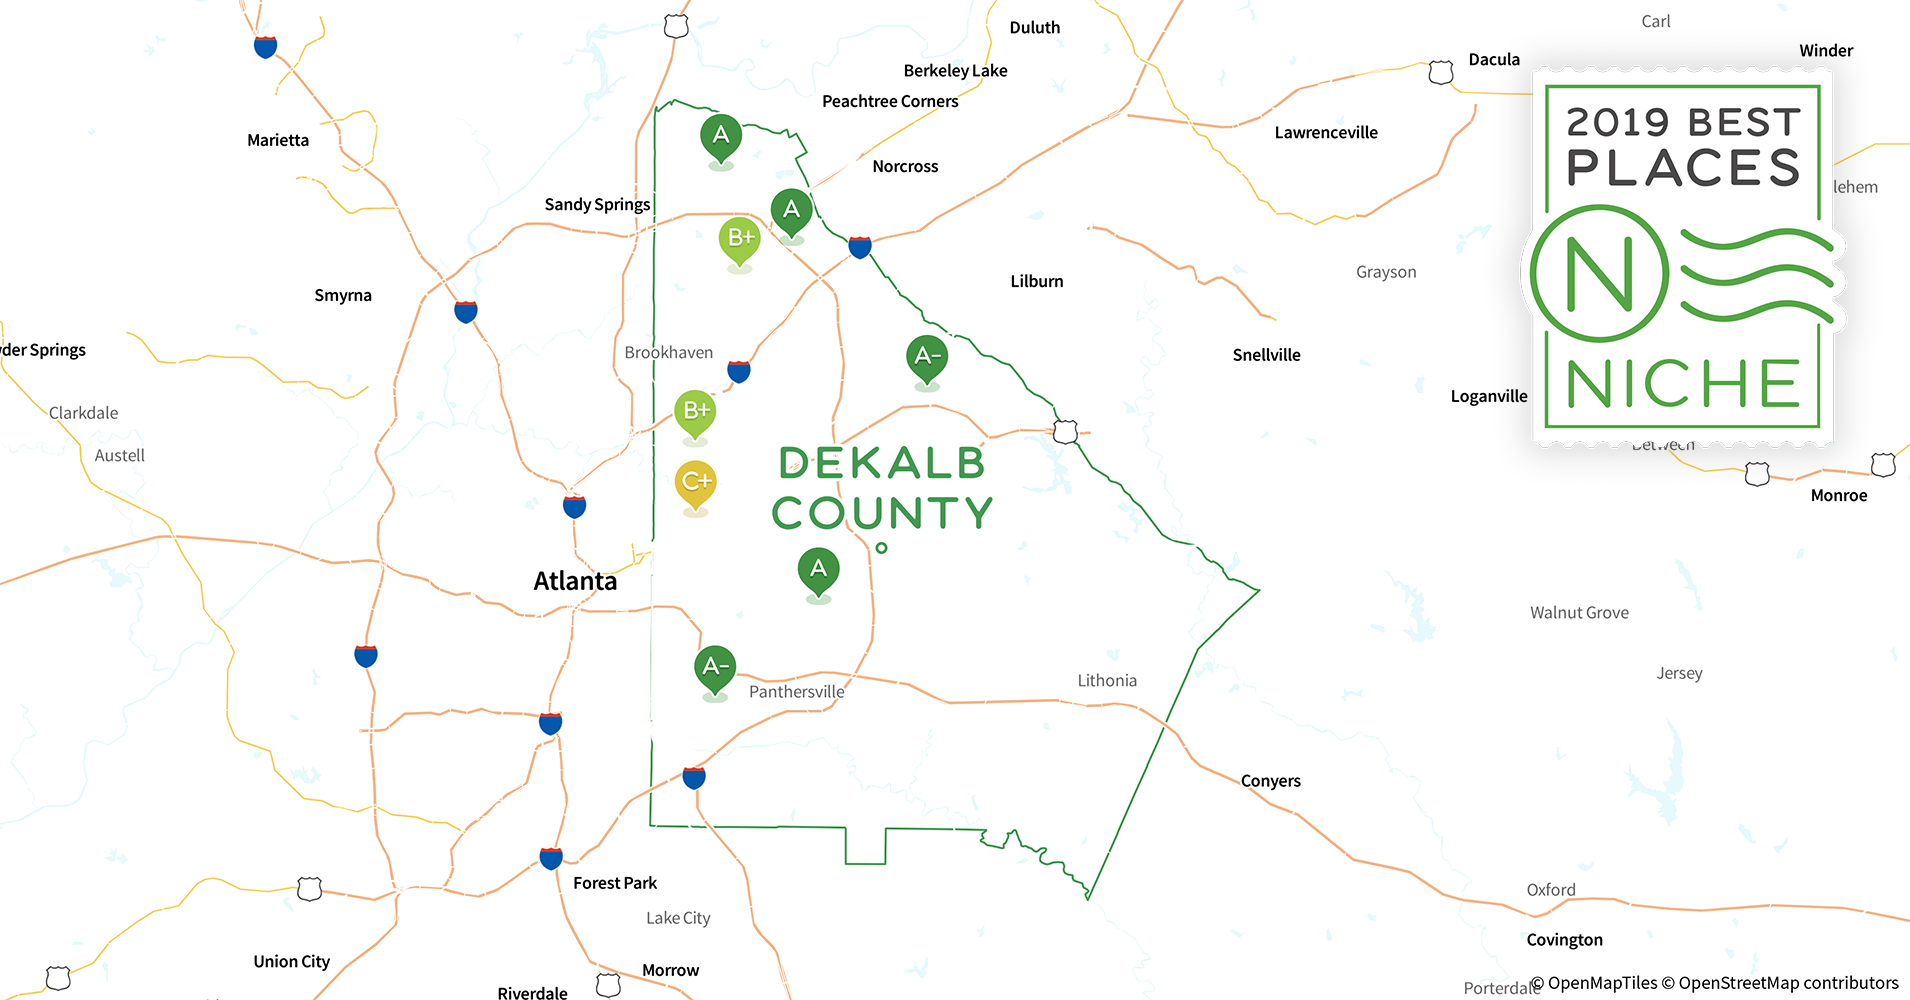 2019 Best Places to Live in DeKalb County, GA - Niche Dekalb County Map on